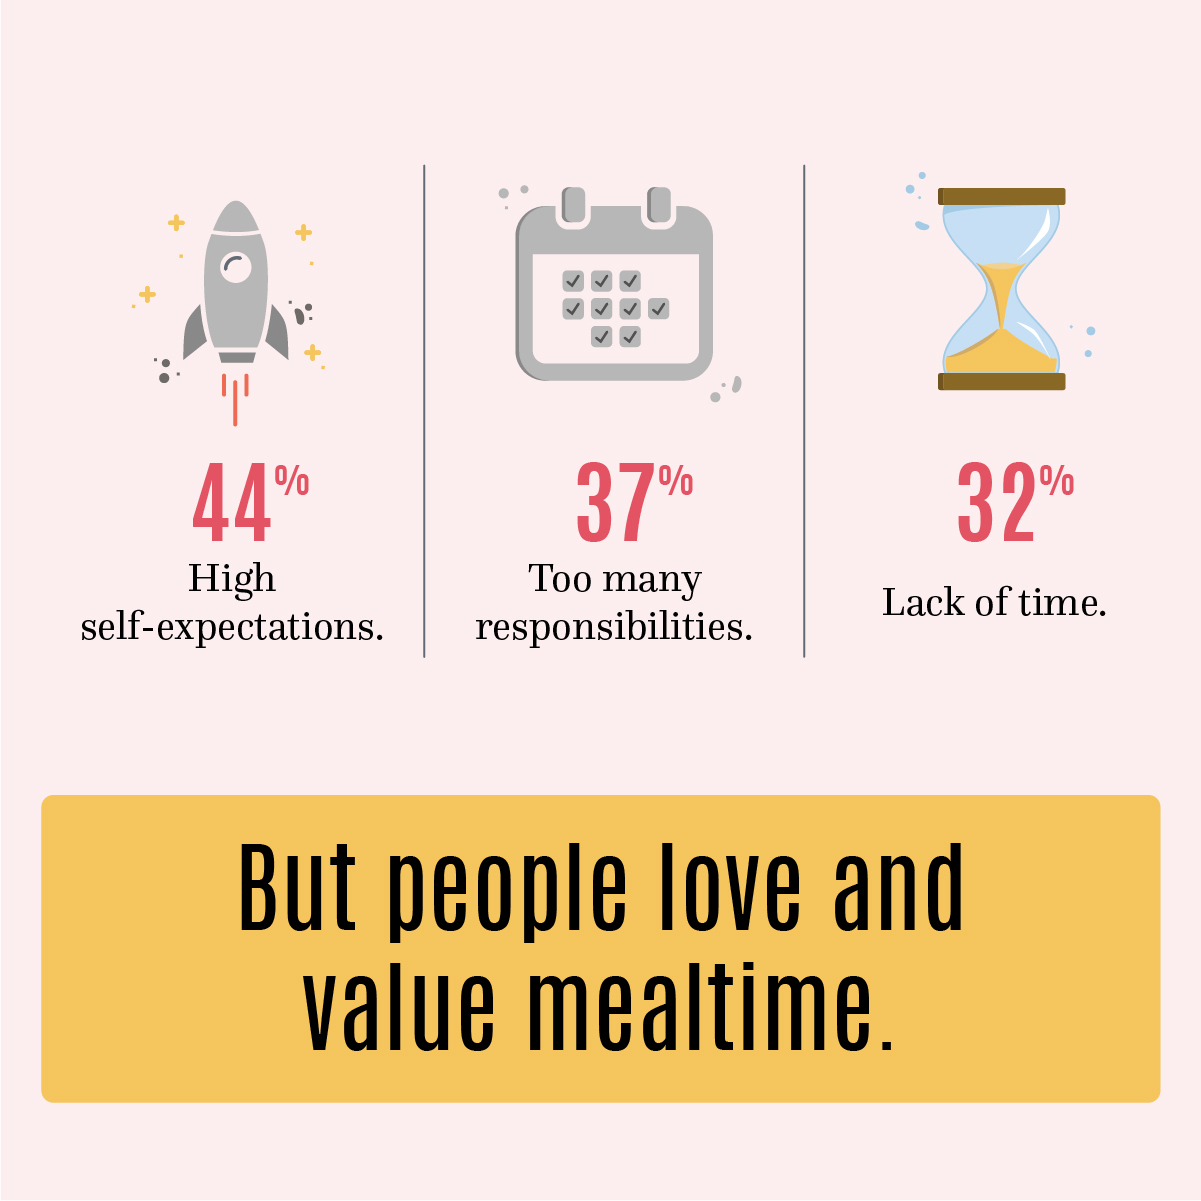 44% High self-expectations. 37% too many responsibilities. 32% lack of time. But people love and value mealtime.